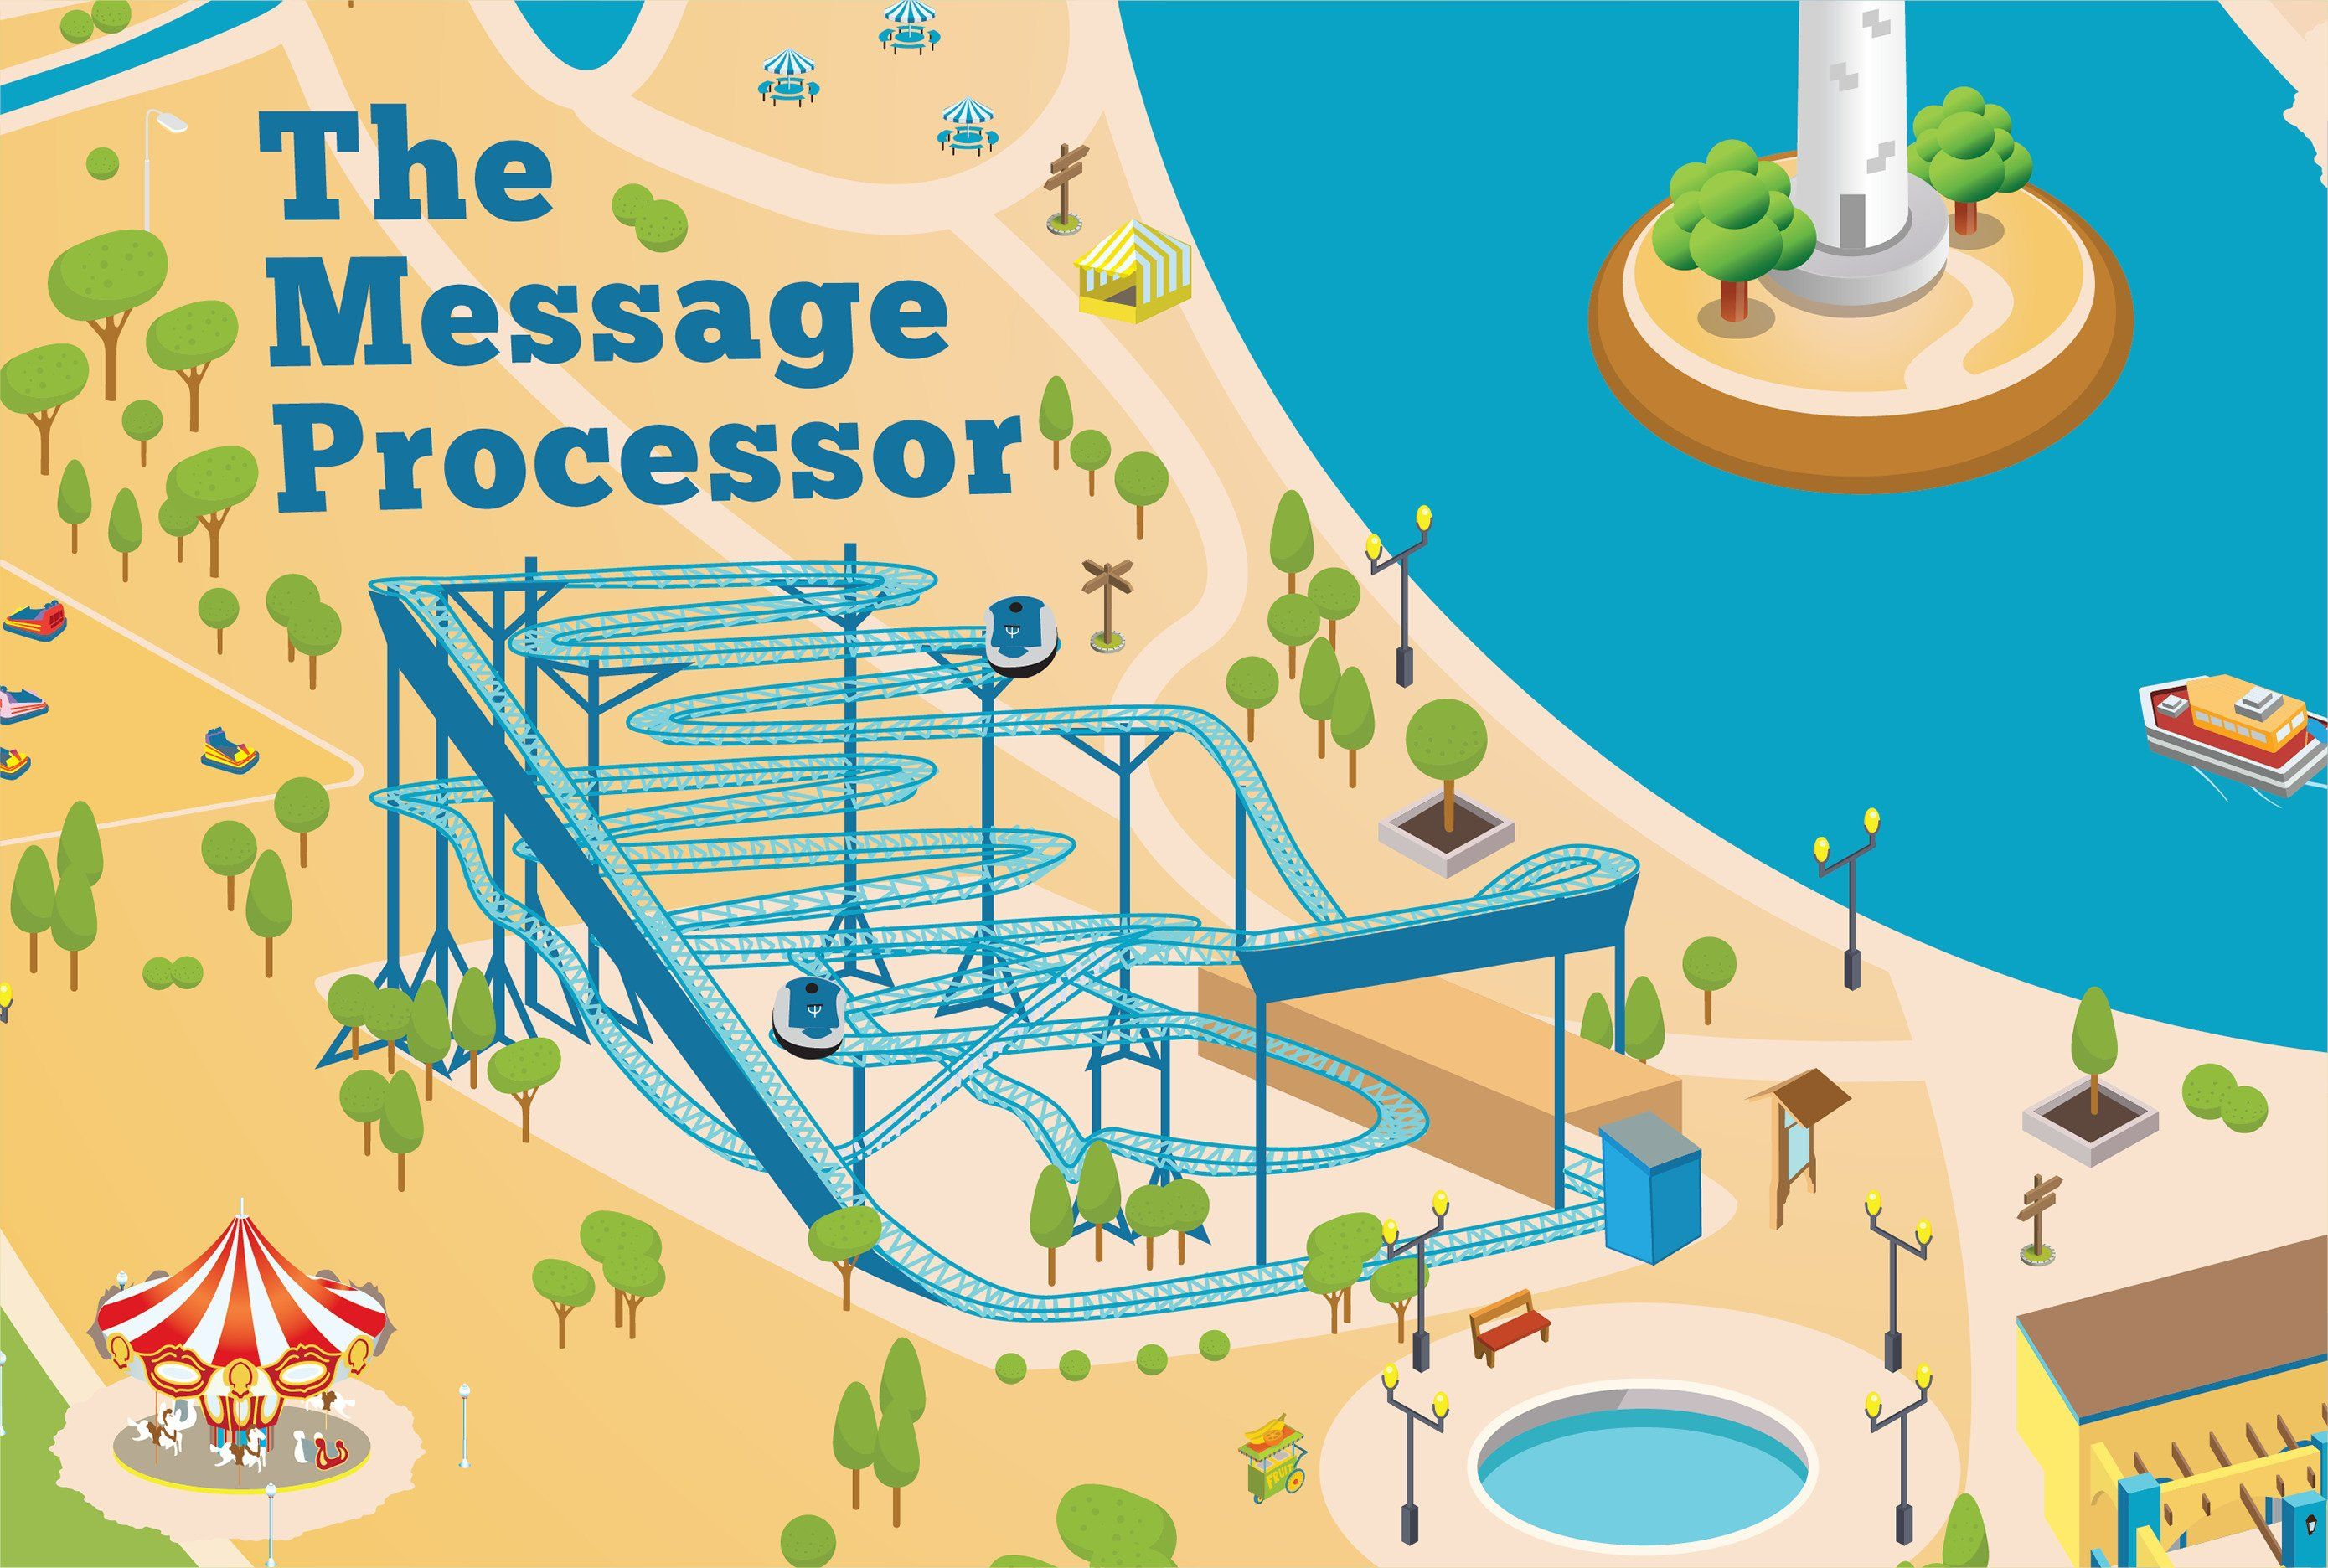 The Message Processor